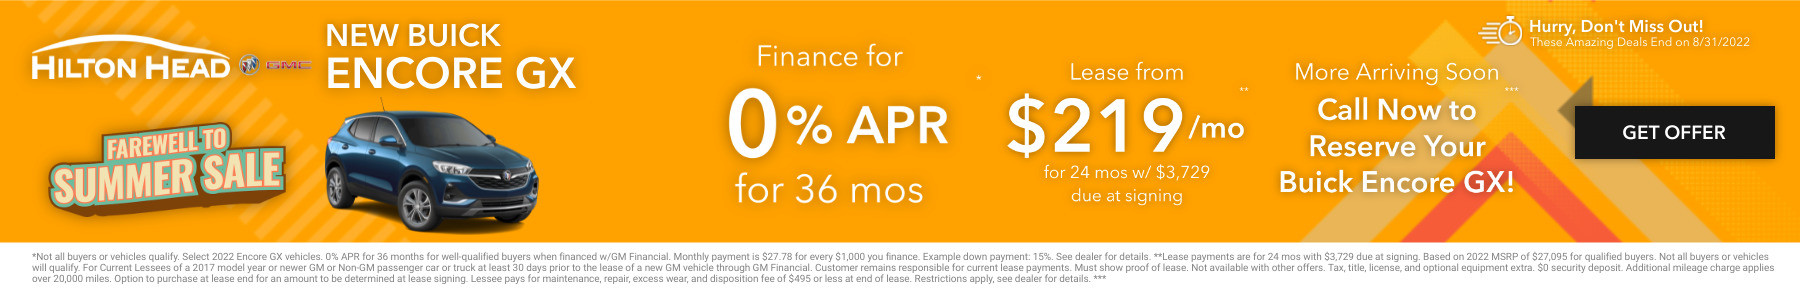 New Buick Current Deals and Offers in Savannah, GA